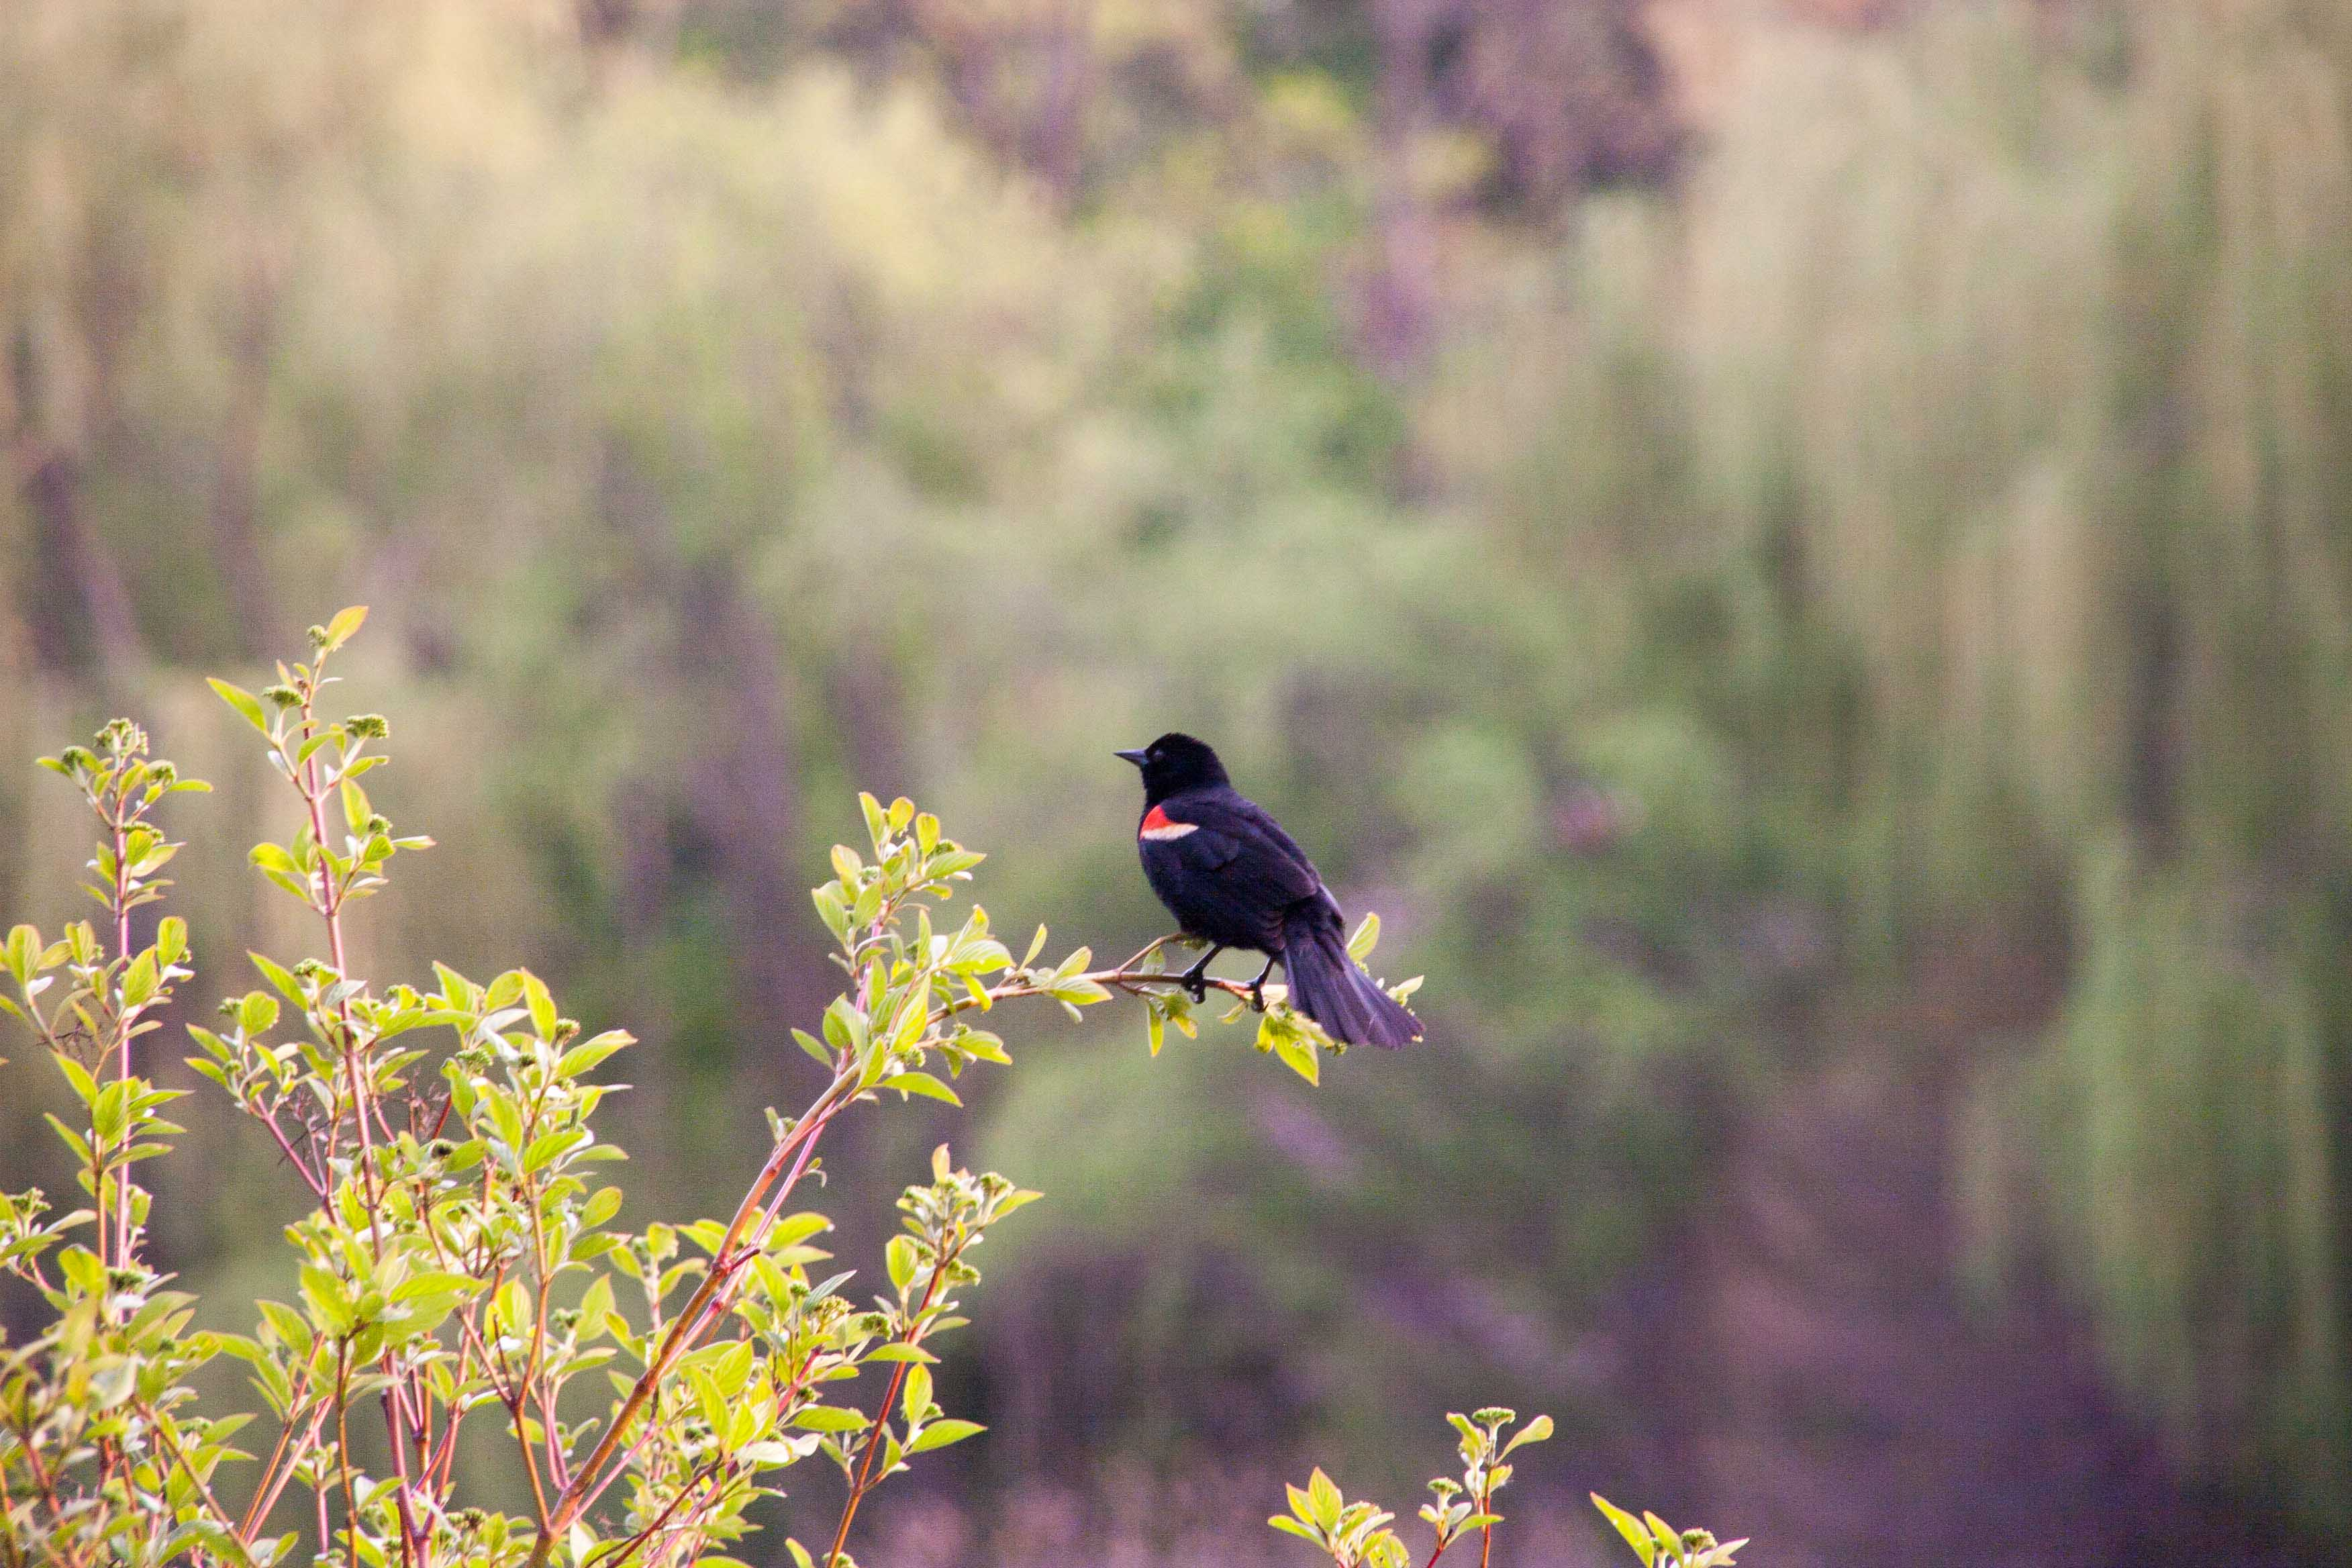 black bird with red primary spot, bright picture with candy-floss like leaves